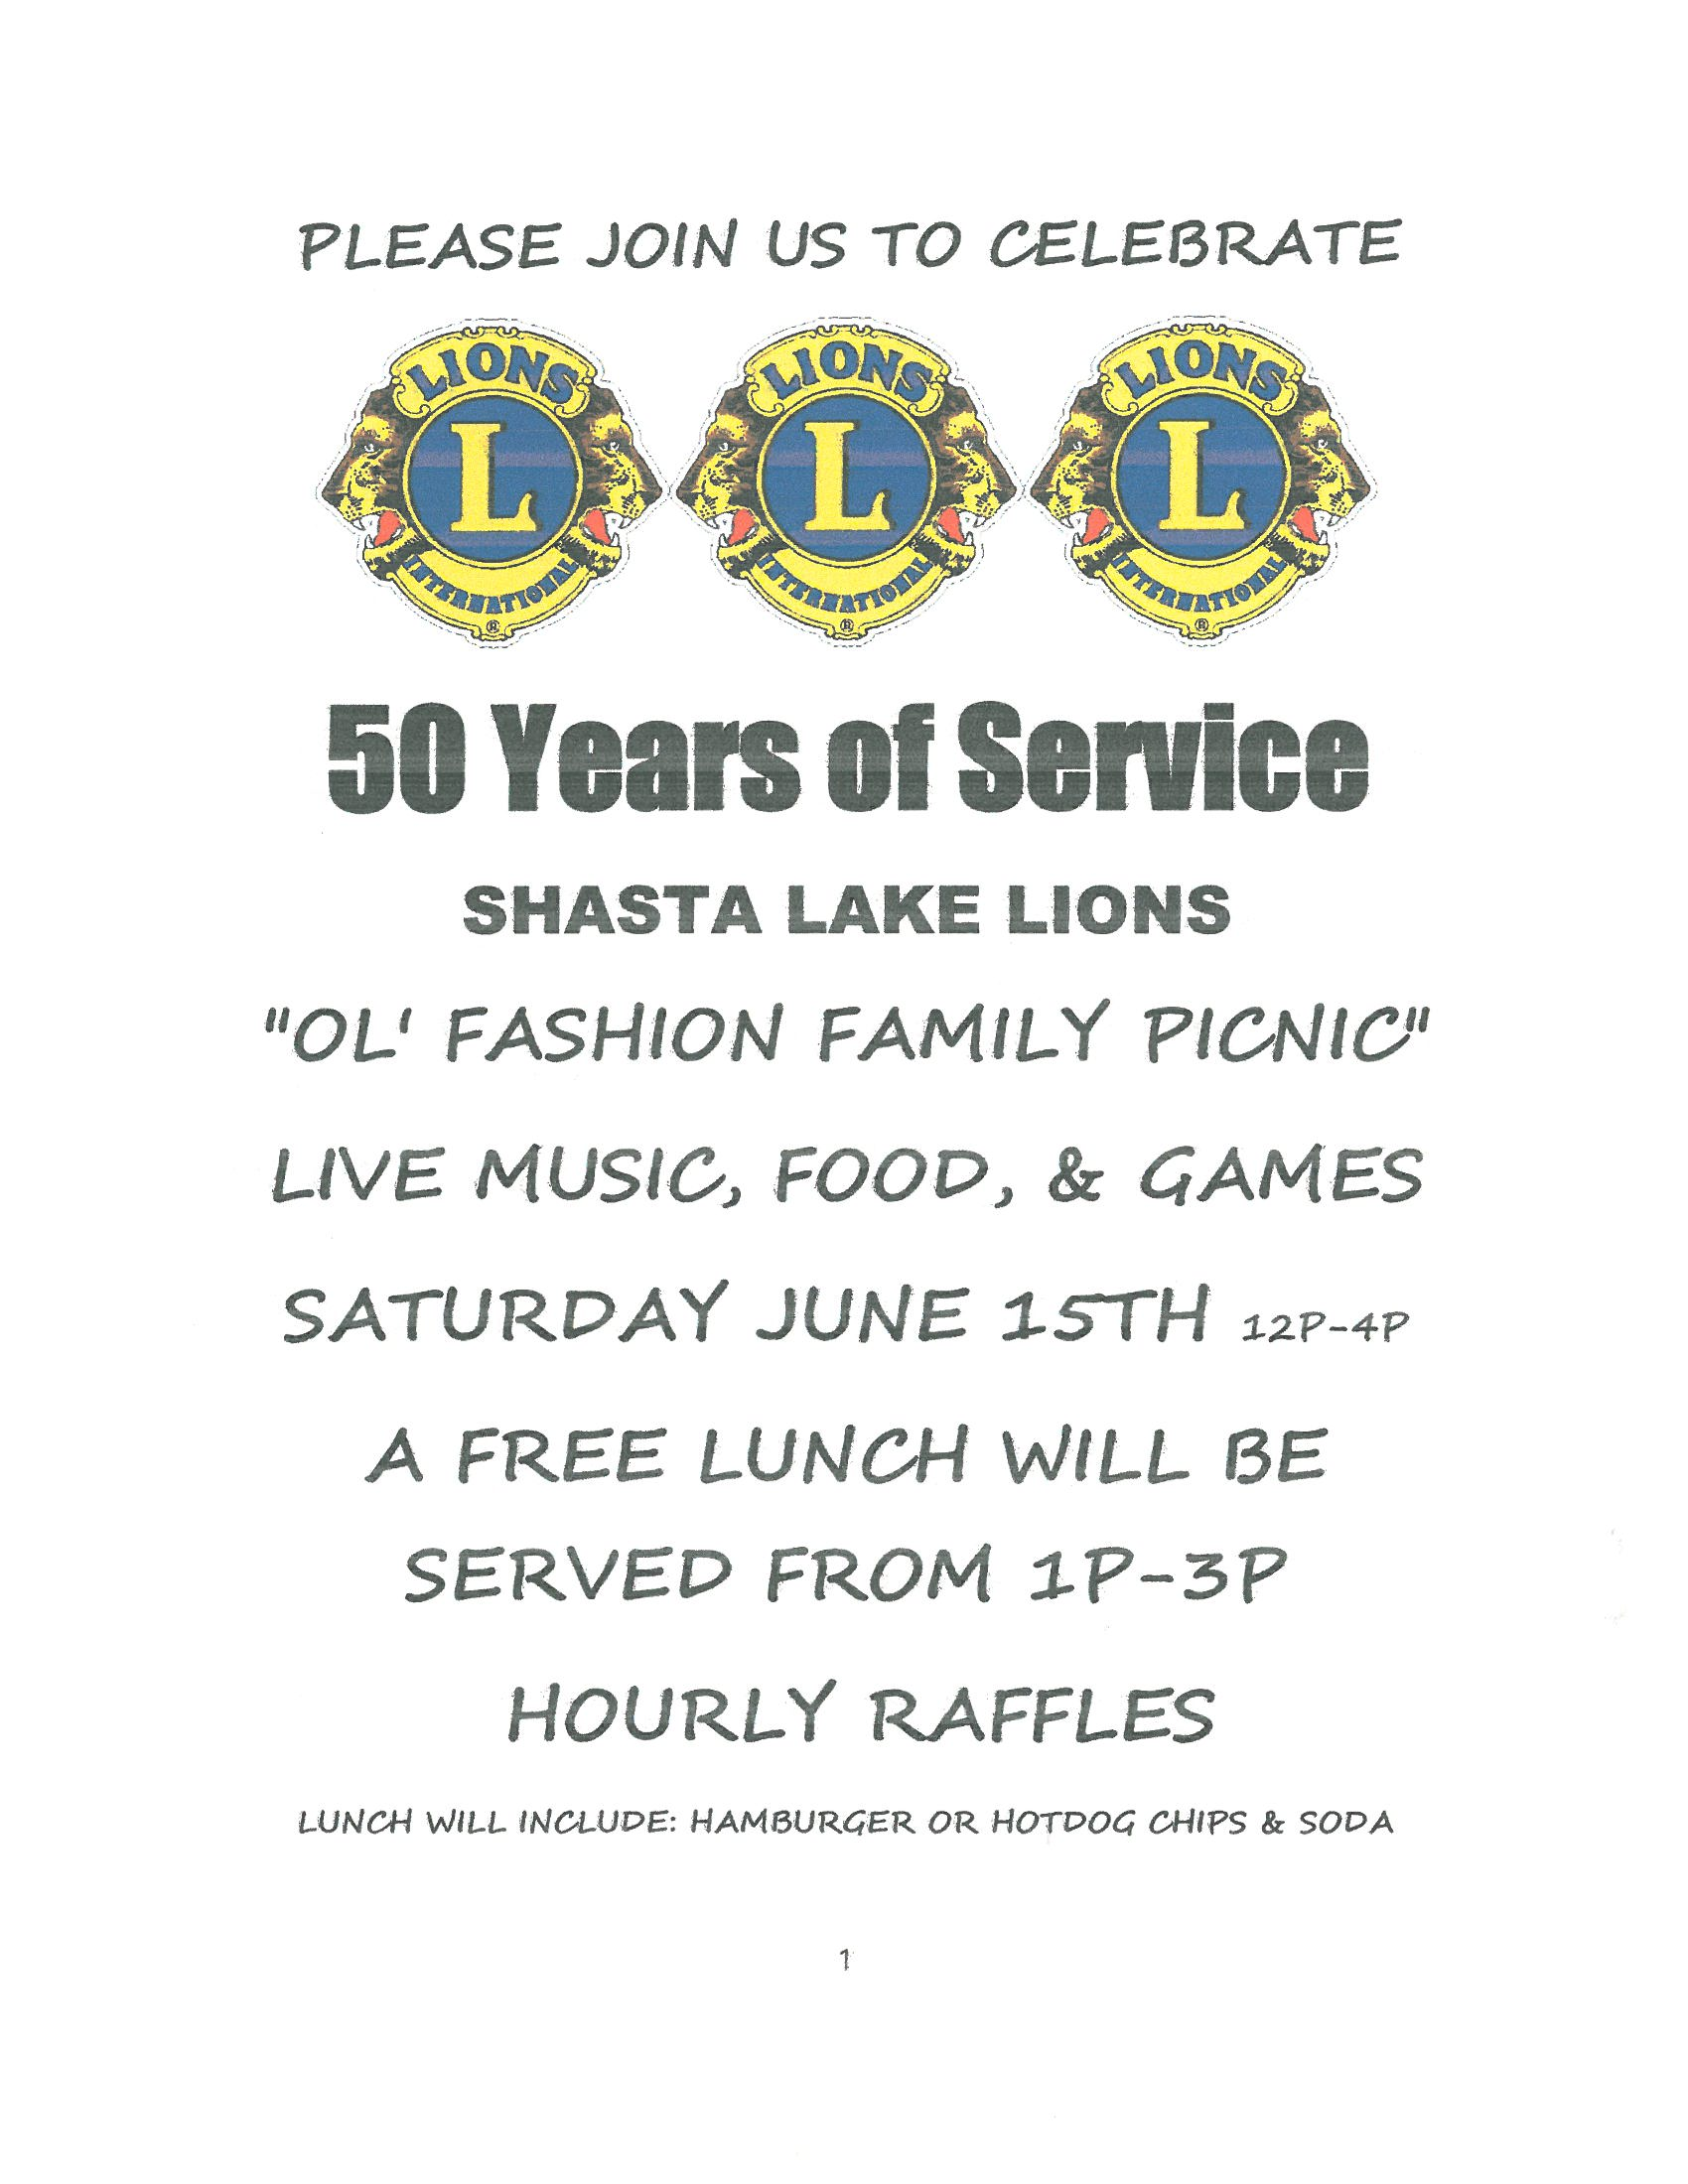 Lions Club 50 Years of Service